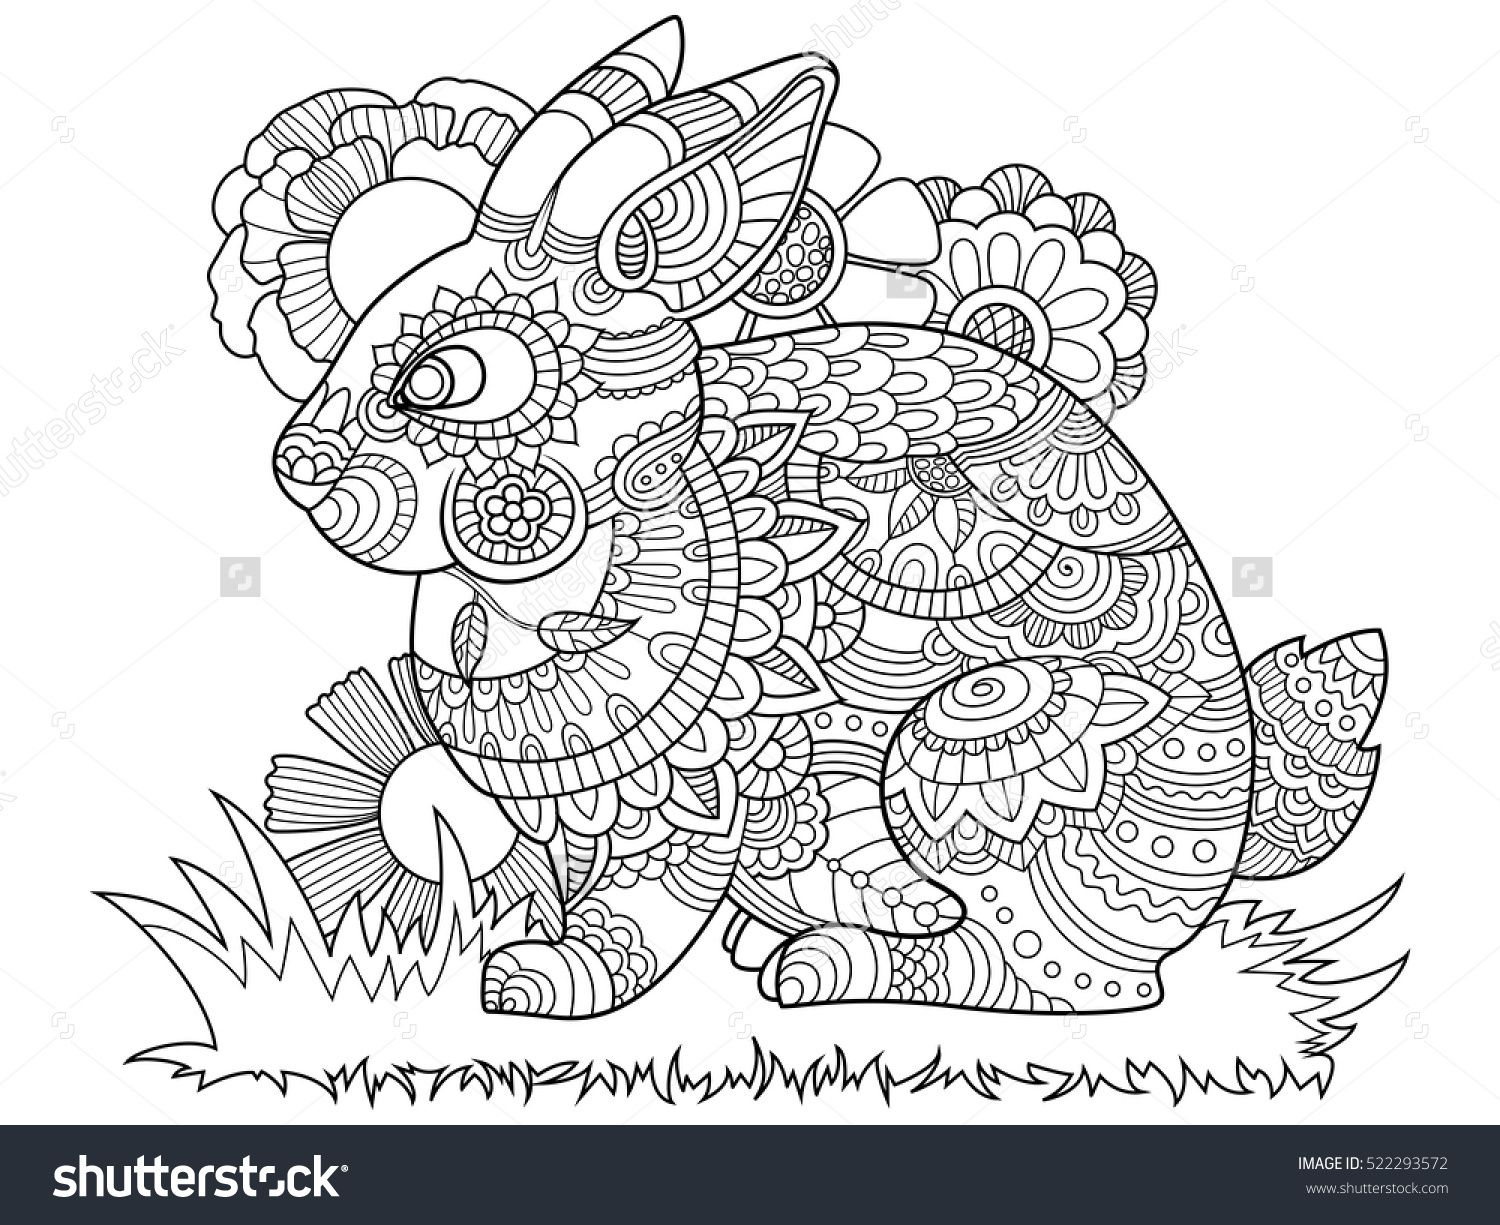 Stress coloring book for adults - Rabbit Bunny Coloring Book For Adults Vector Illustration Anti Stress Coloring For Adult